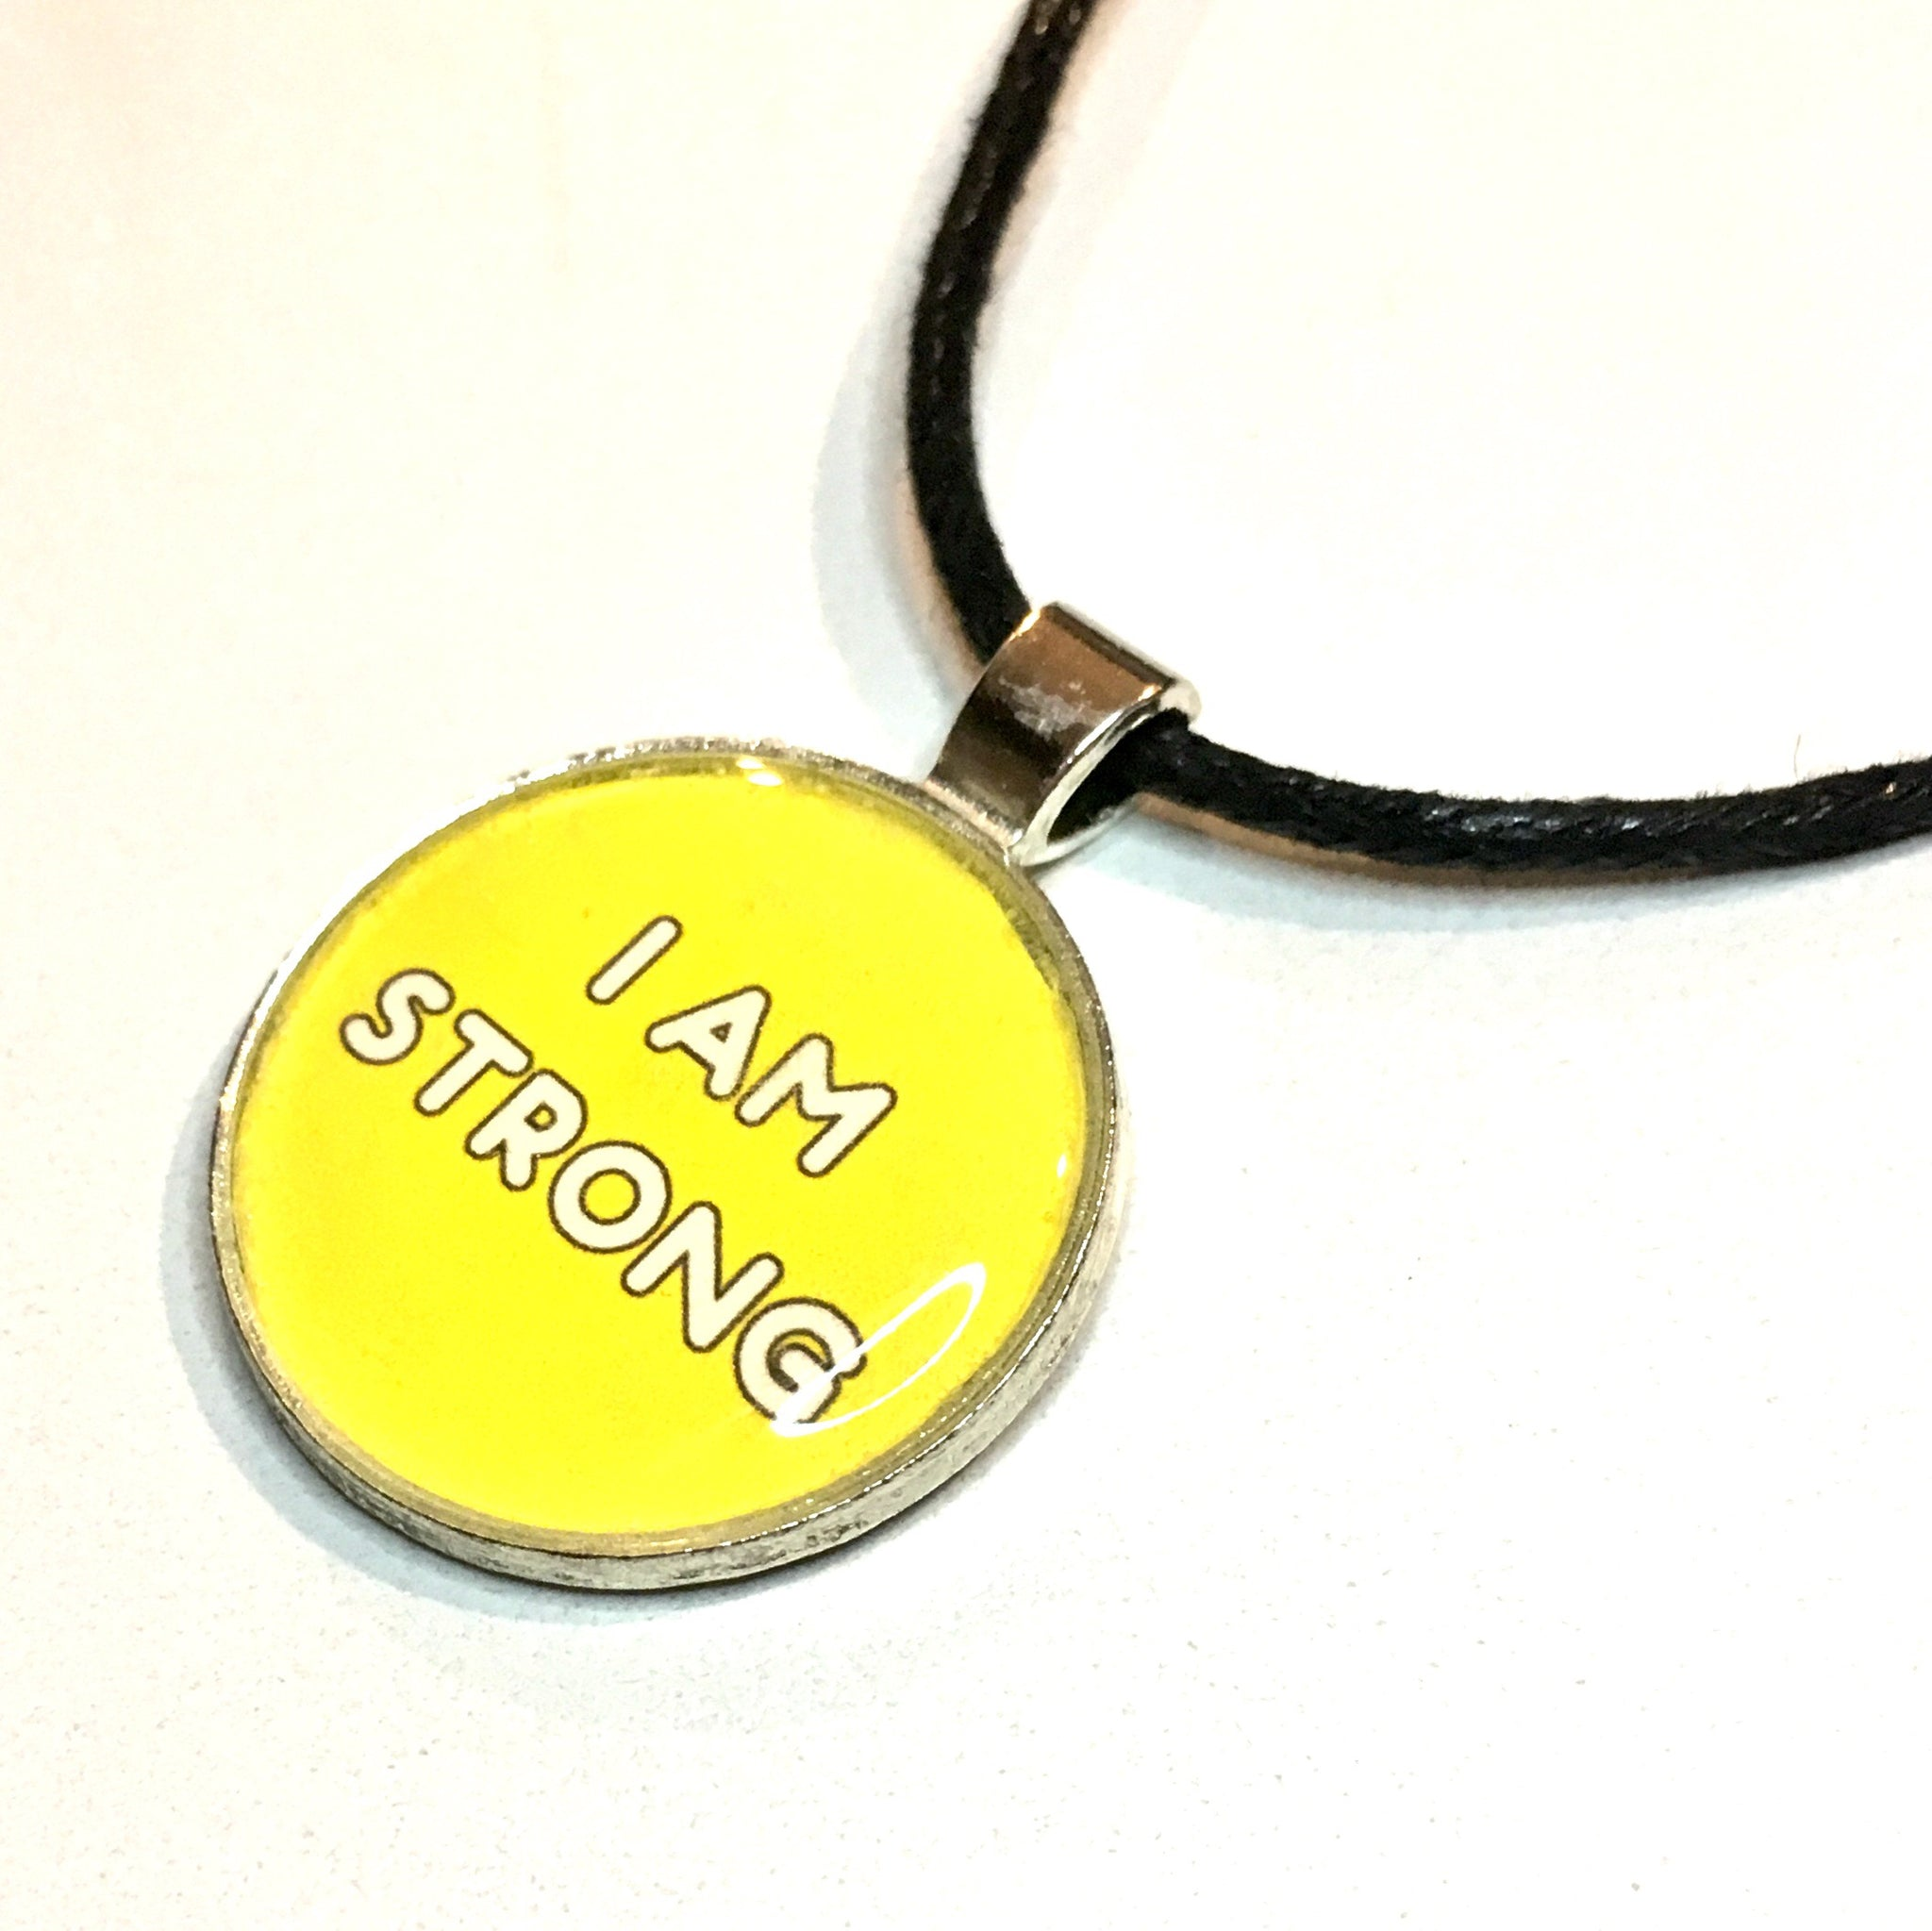 I Am Strong 25 mm/1 inch Solar Plexus Chakra Manipura Affirmation Art Pendant - Morgan Cerese Art